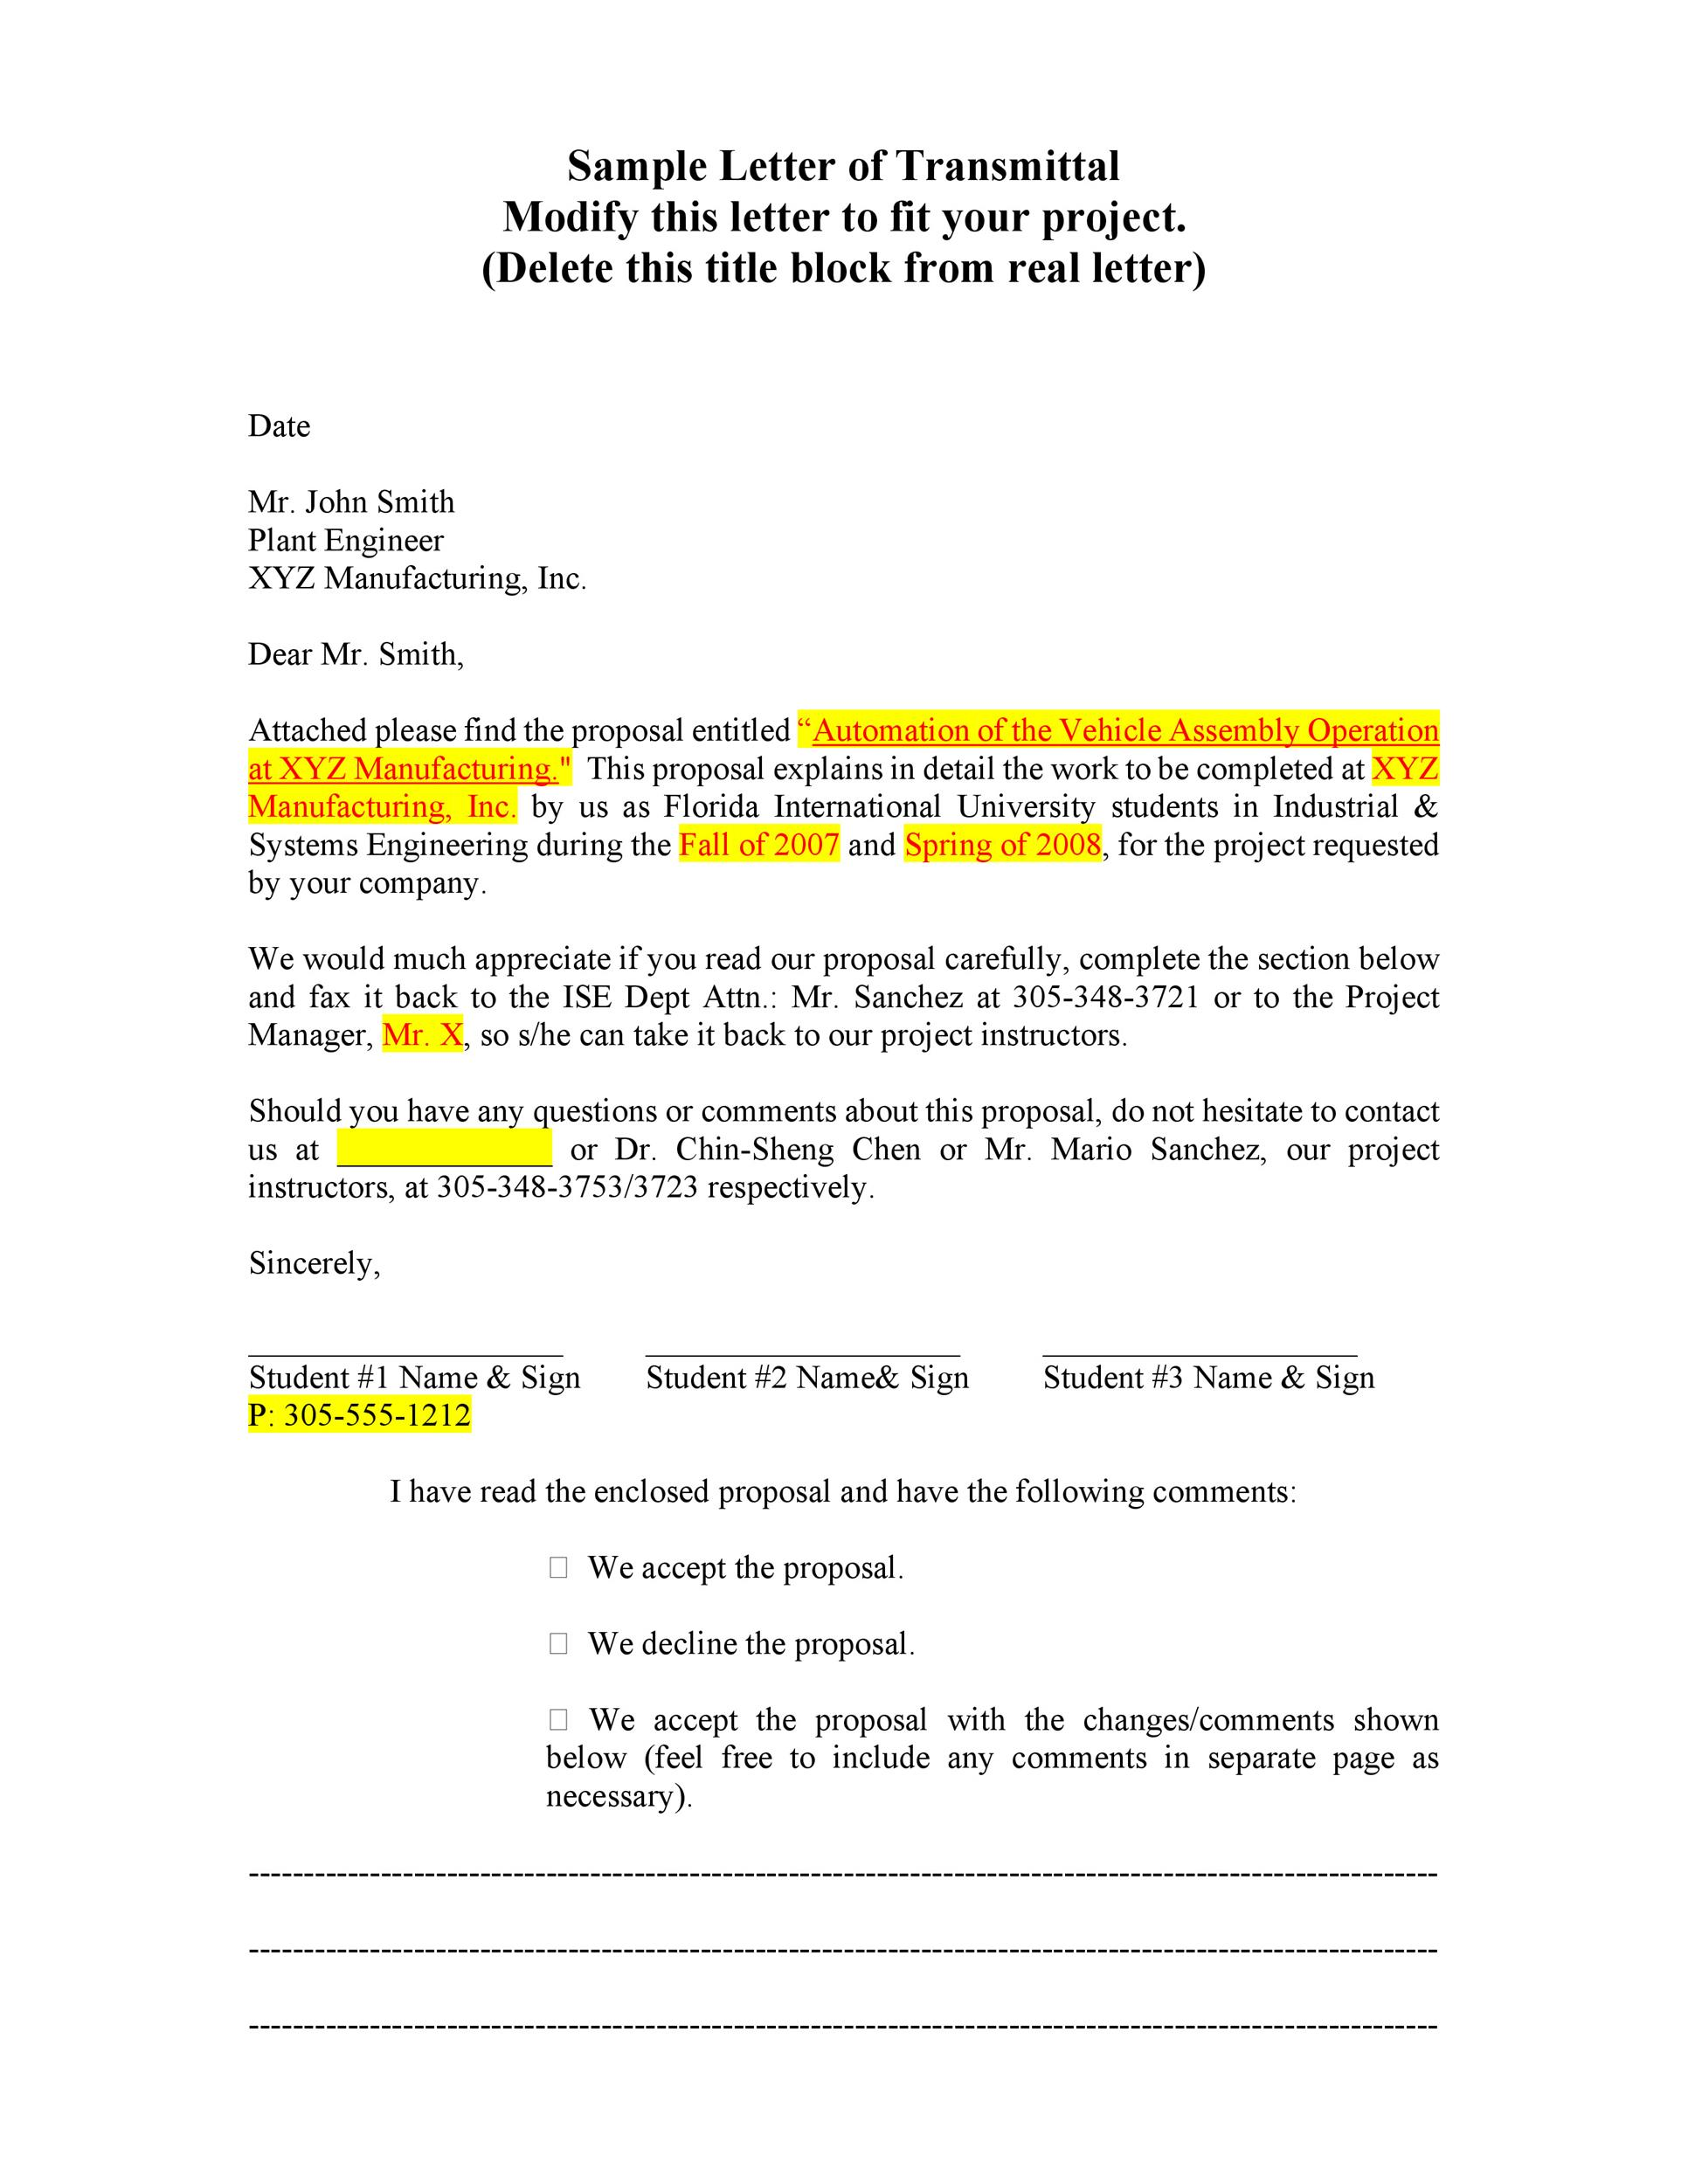 Letter of Transmittal 40 Great Examples Templates Template Lab – Letter of Transmittal for Proposal